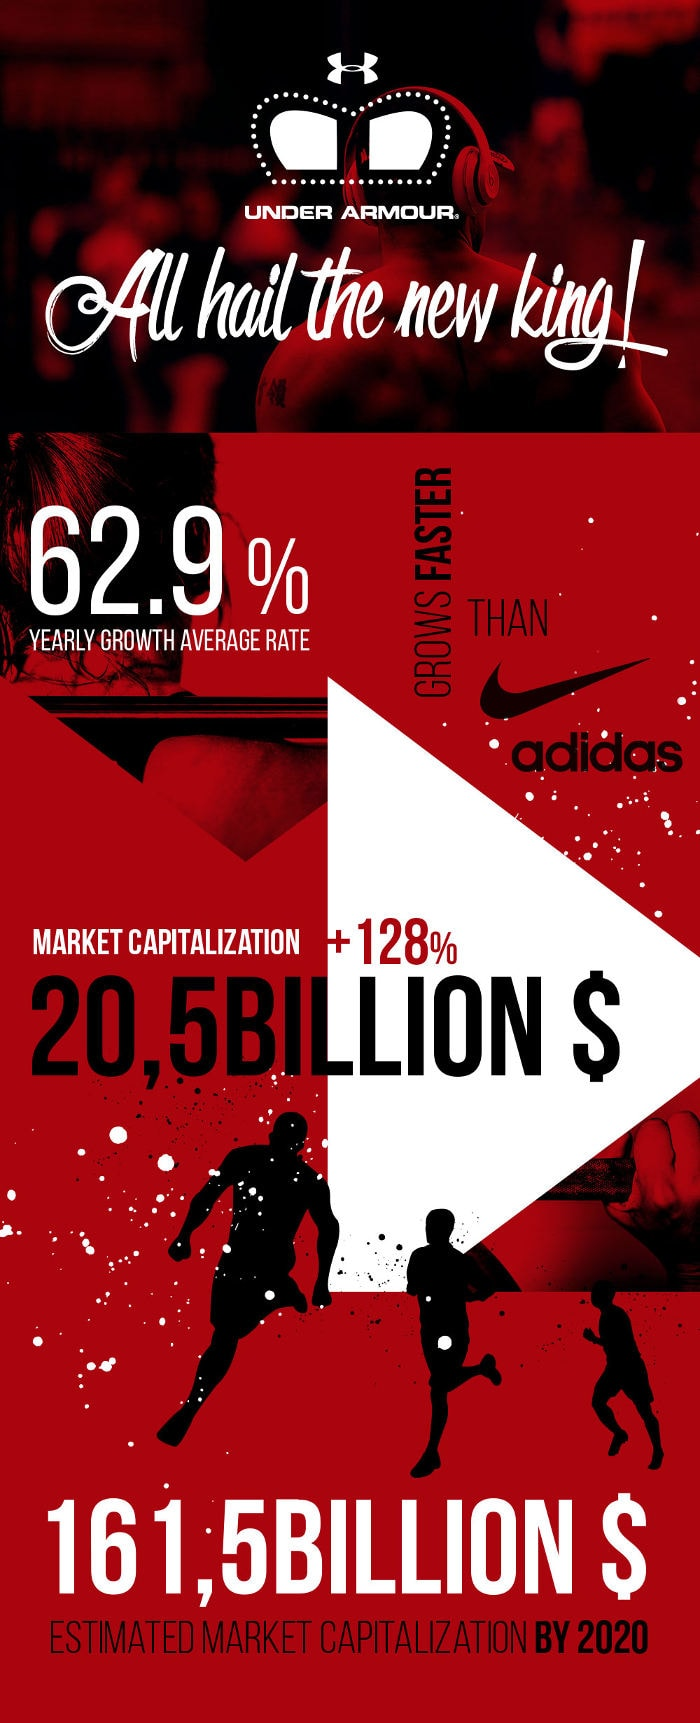 Infographic - Why Under Armour is surpassing Adidas and catching up to Nike